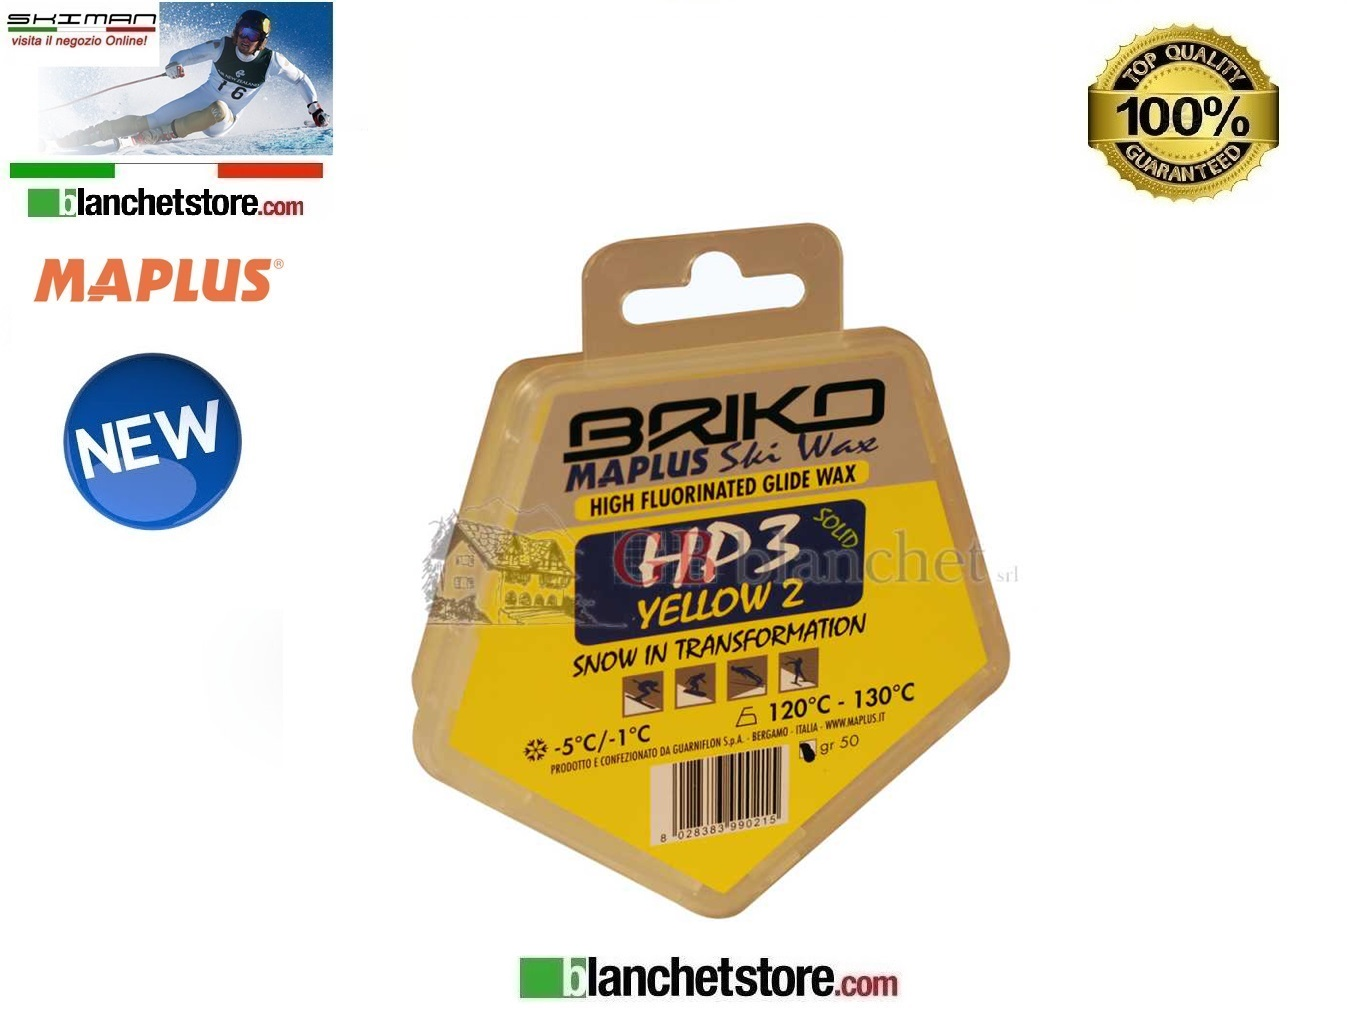 Sciolina MAPLUS HIGH FLUO HP 3 Conf 50 gr YELLOW